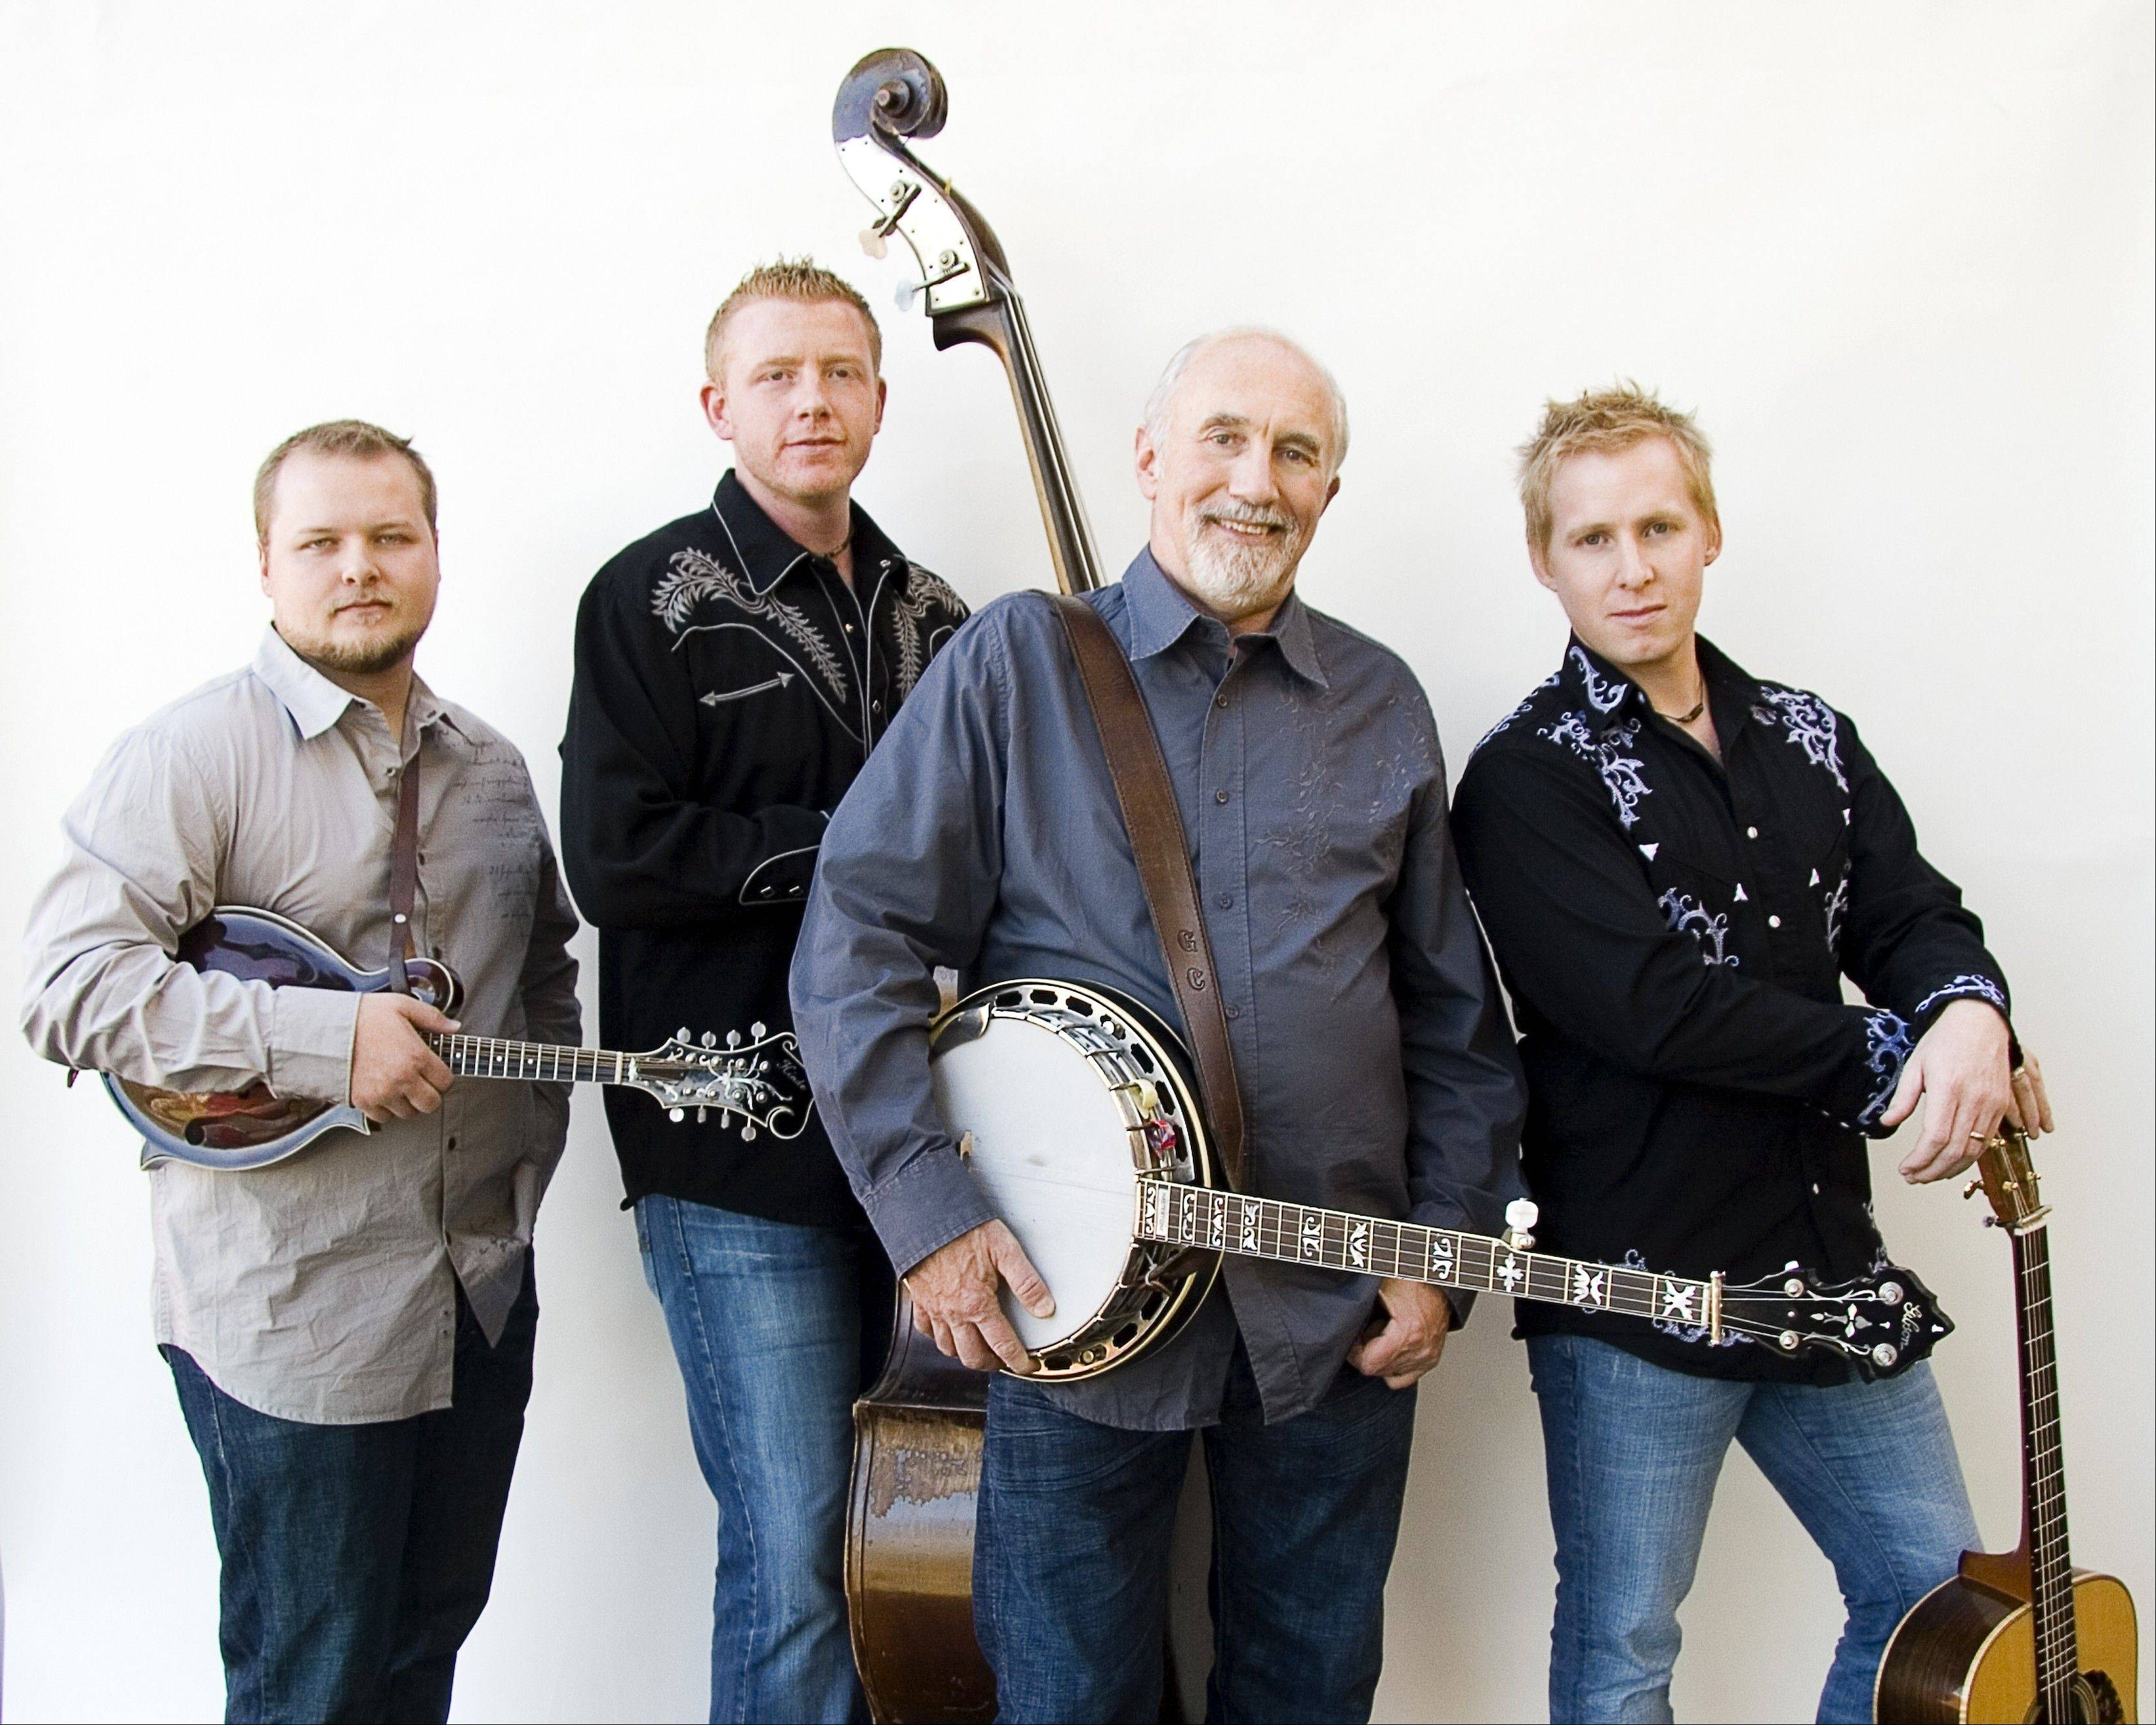 The Special Consensus Bluegrass Band performs at 4 p.m. Sunday, July 7, at Sunset Foods Pavilion in Long Grove.